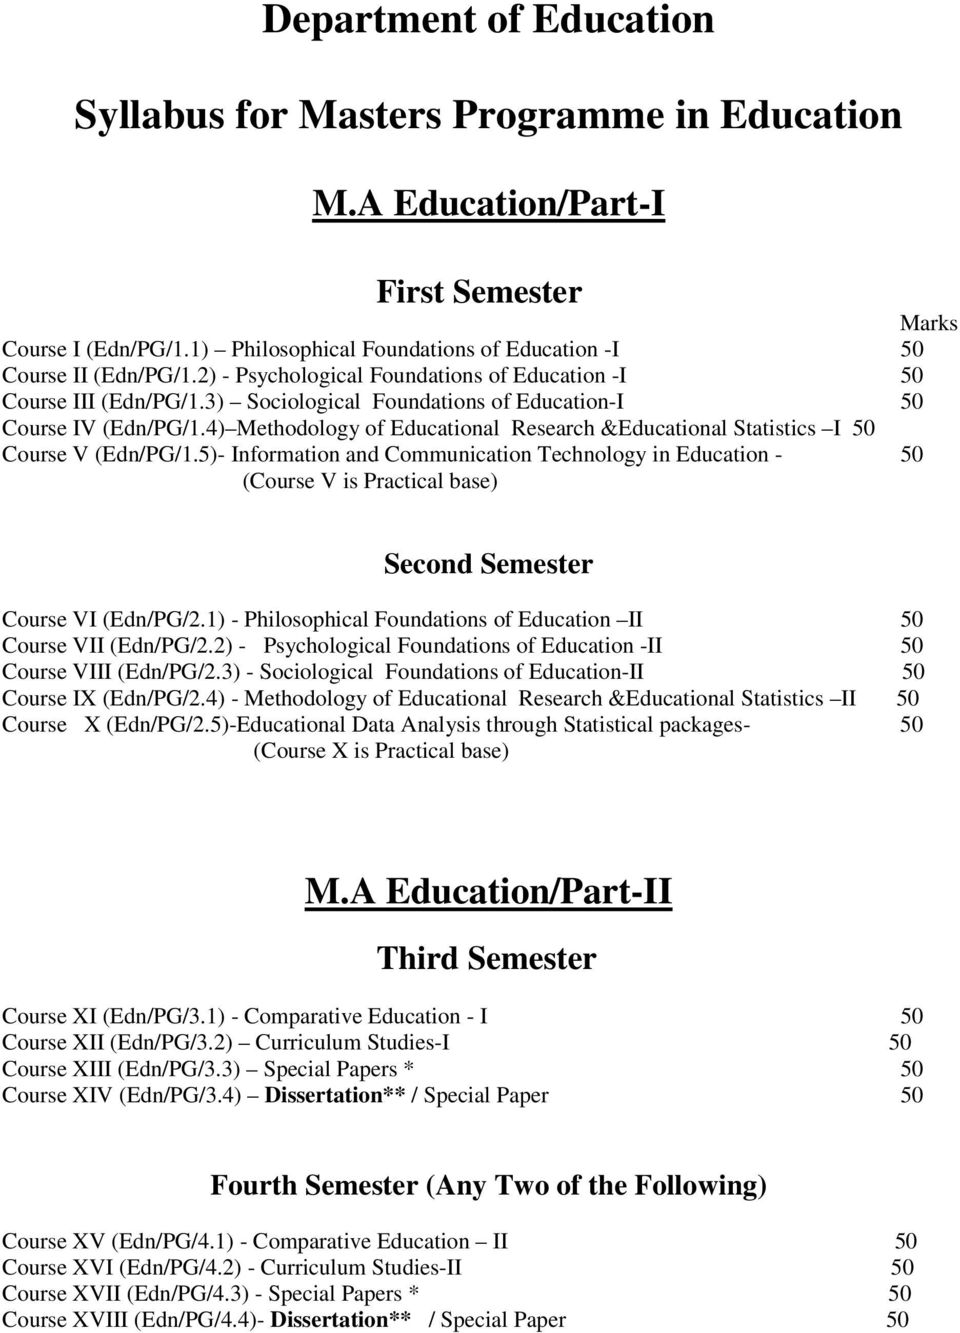 Department of Education  Syllabus for Masters Programme in